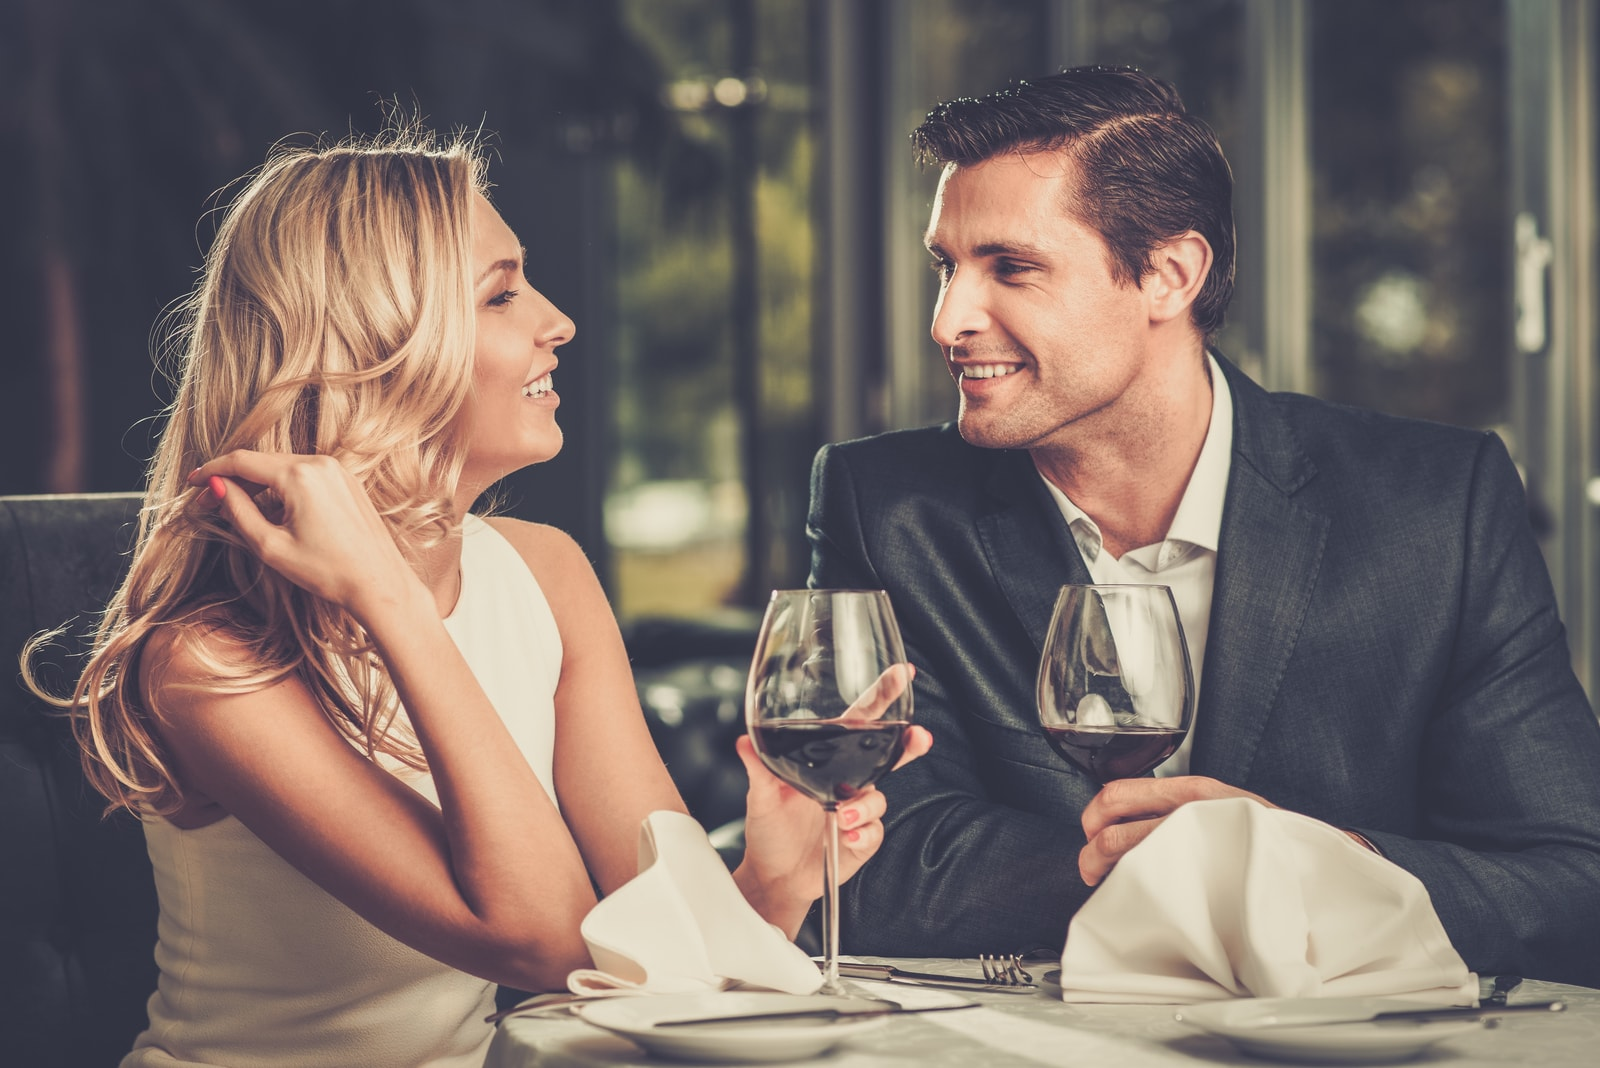 a man and a woman drink wine and talk